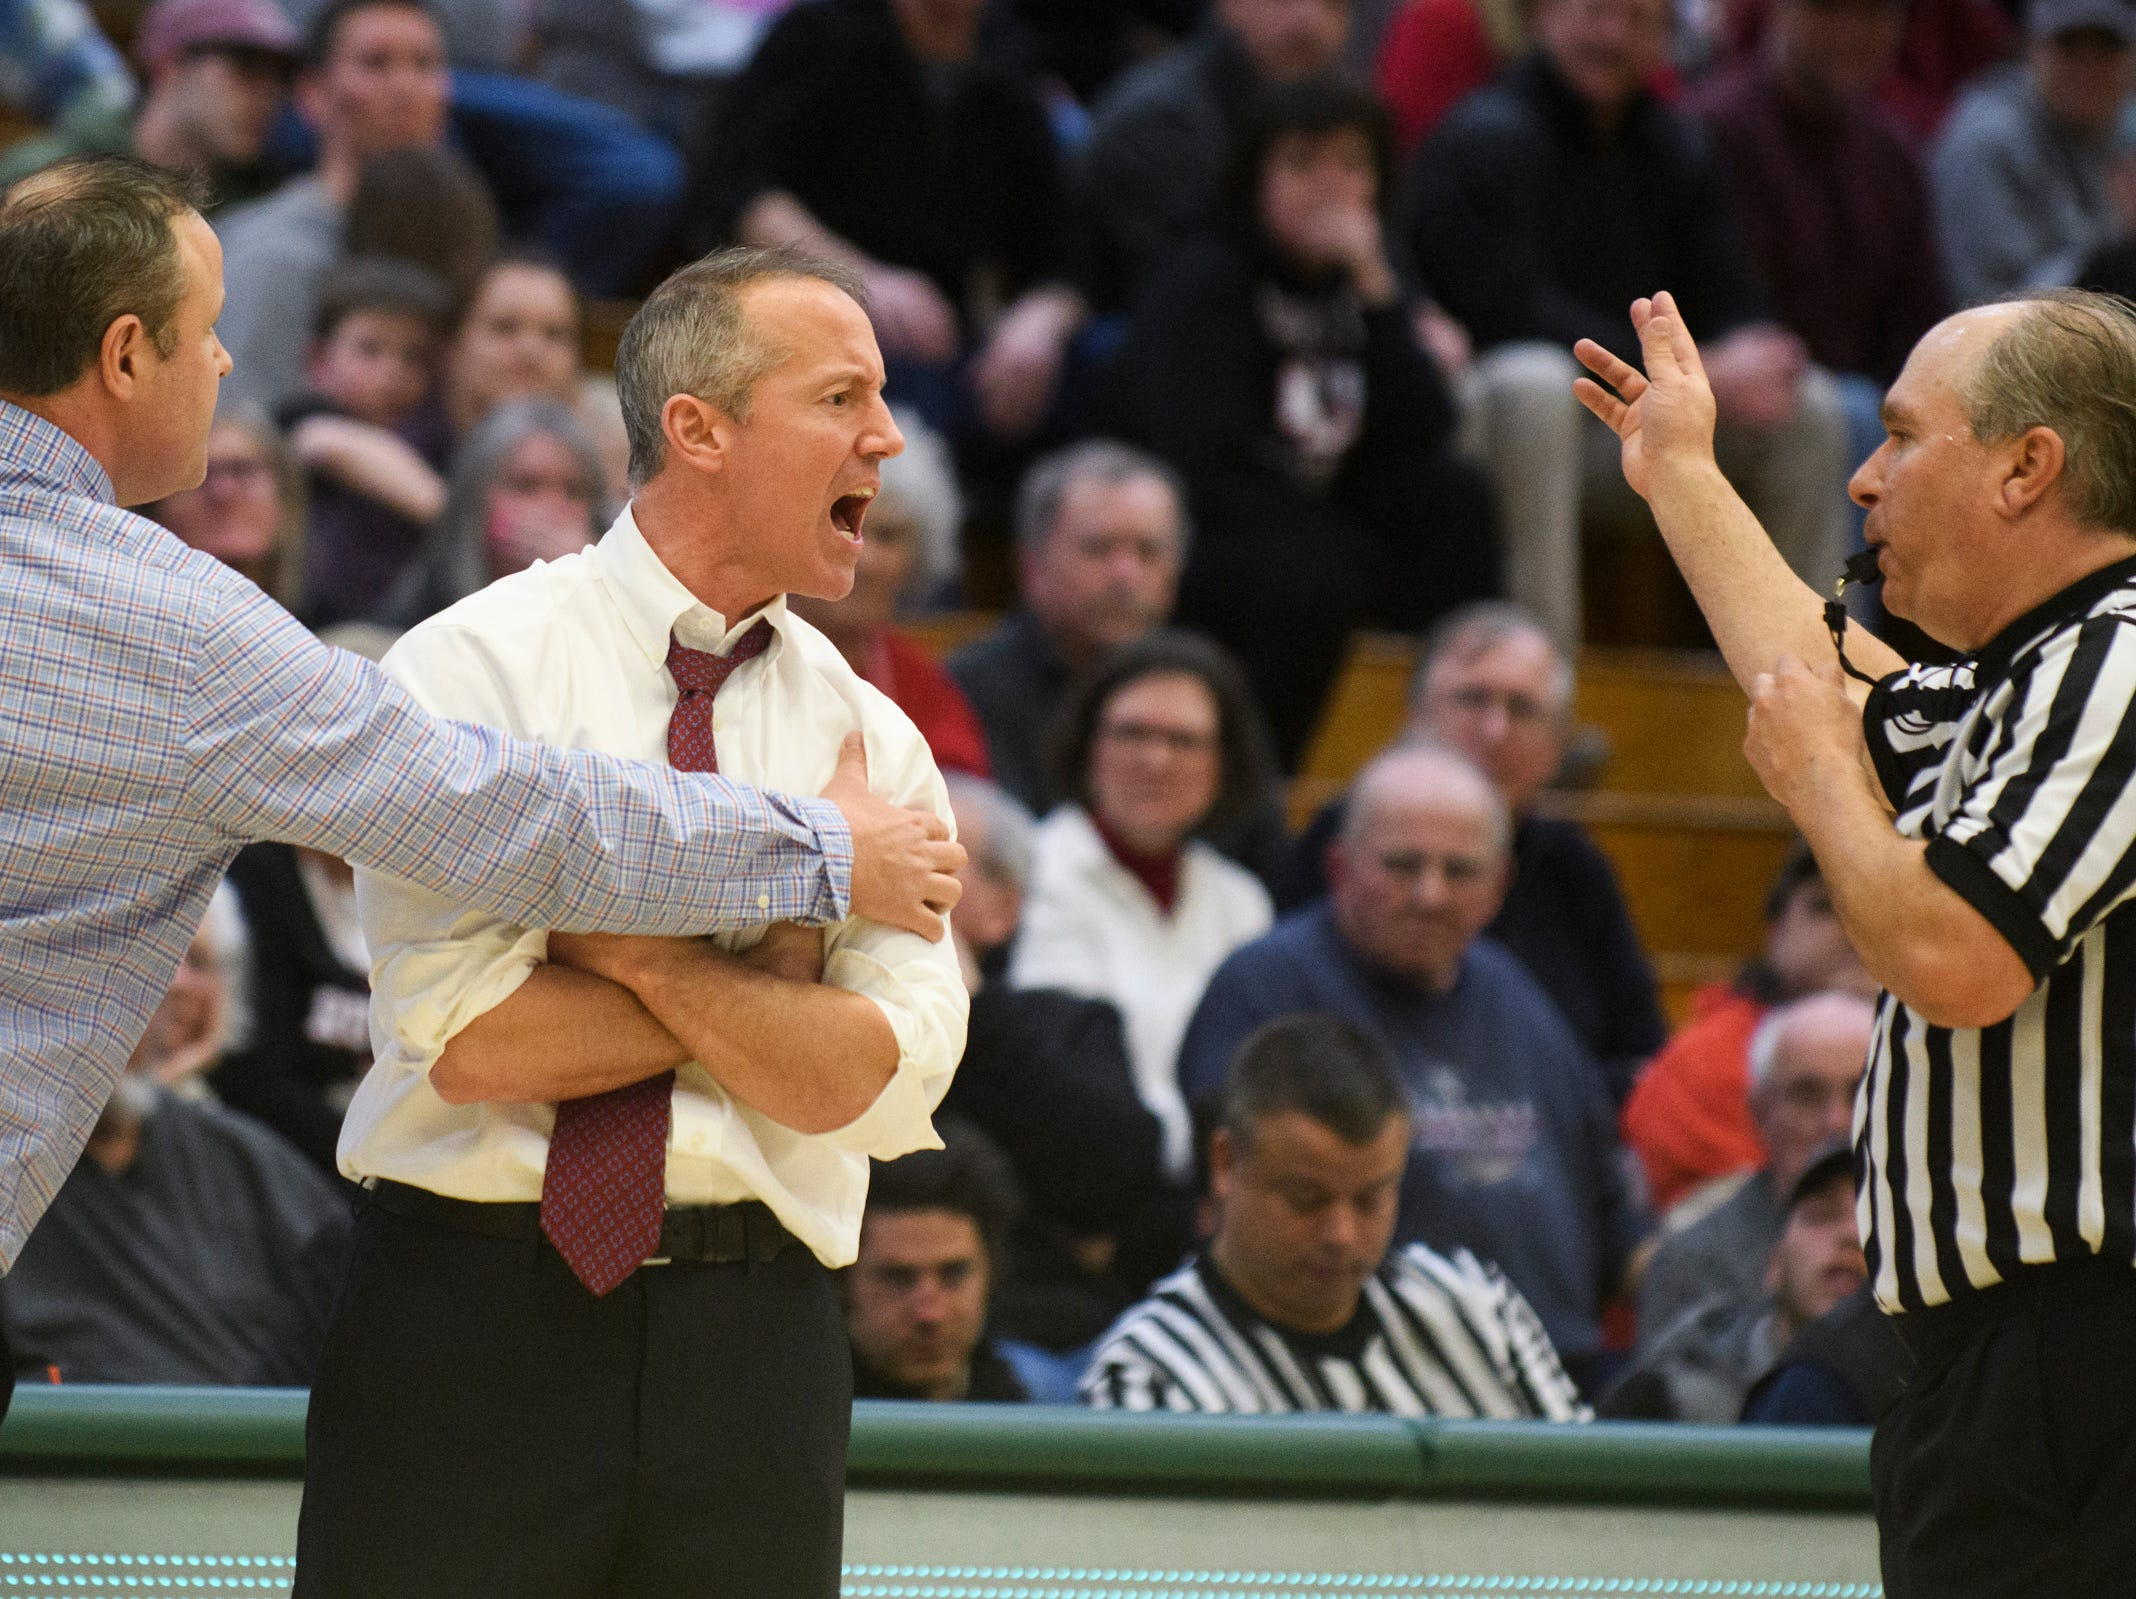 Rutland head coach Mike Wood talks to the referee during the DI boys basketball championship game between the St. Johnsbury Hilltoppers and the Rutland Raiders at Patrick Gym on Sunday afternoon March 17, 2019 in Burlington, Vermont.